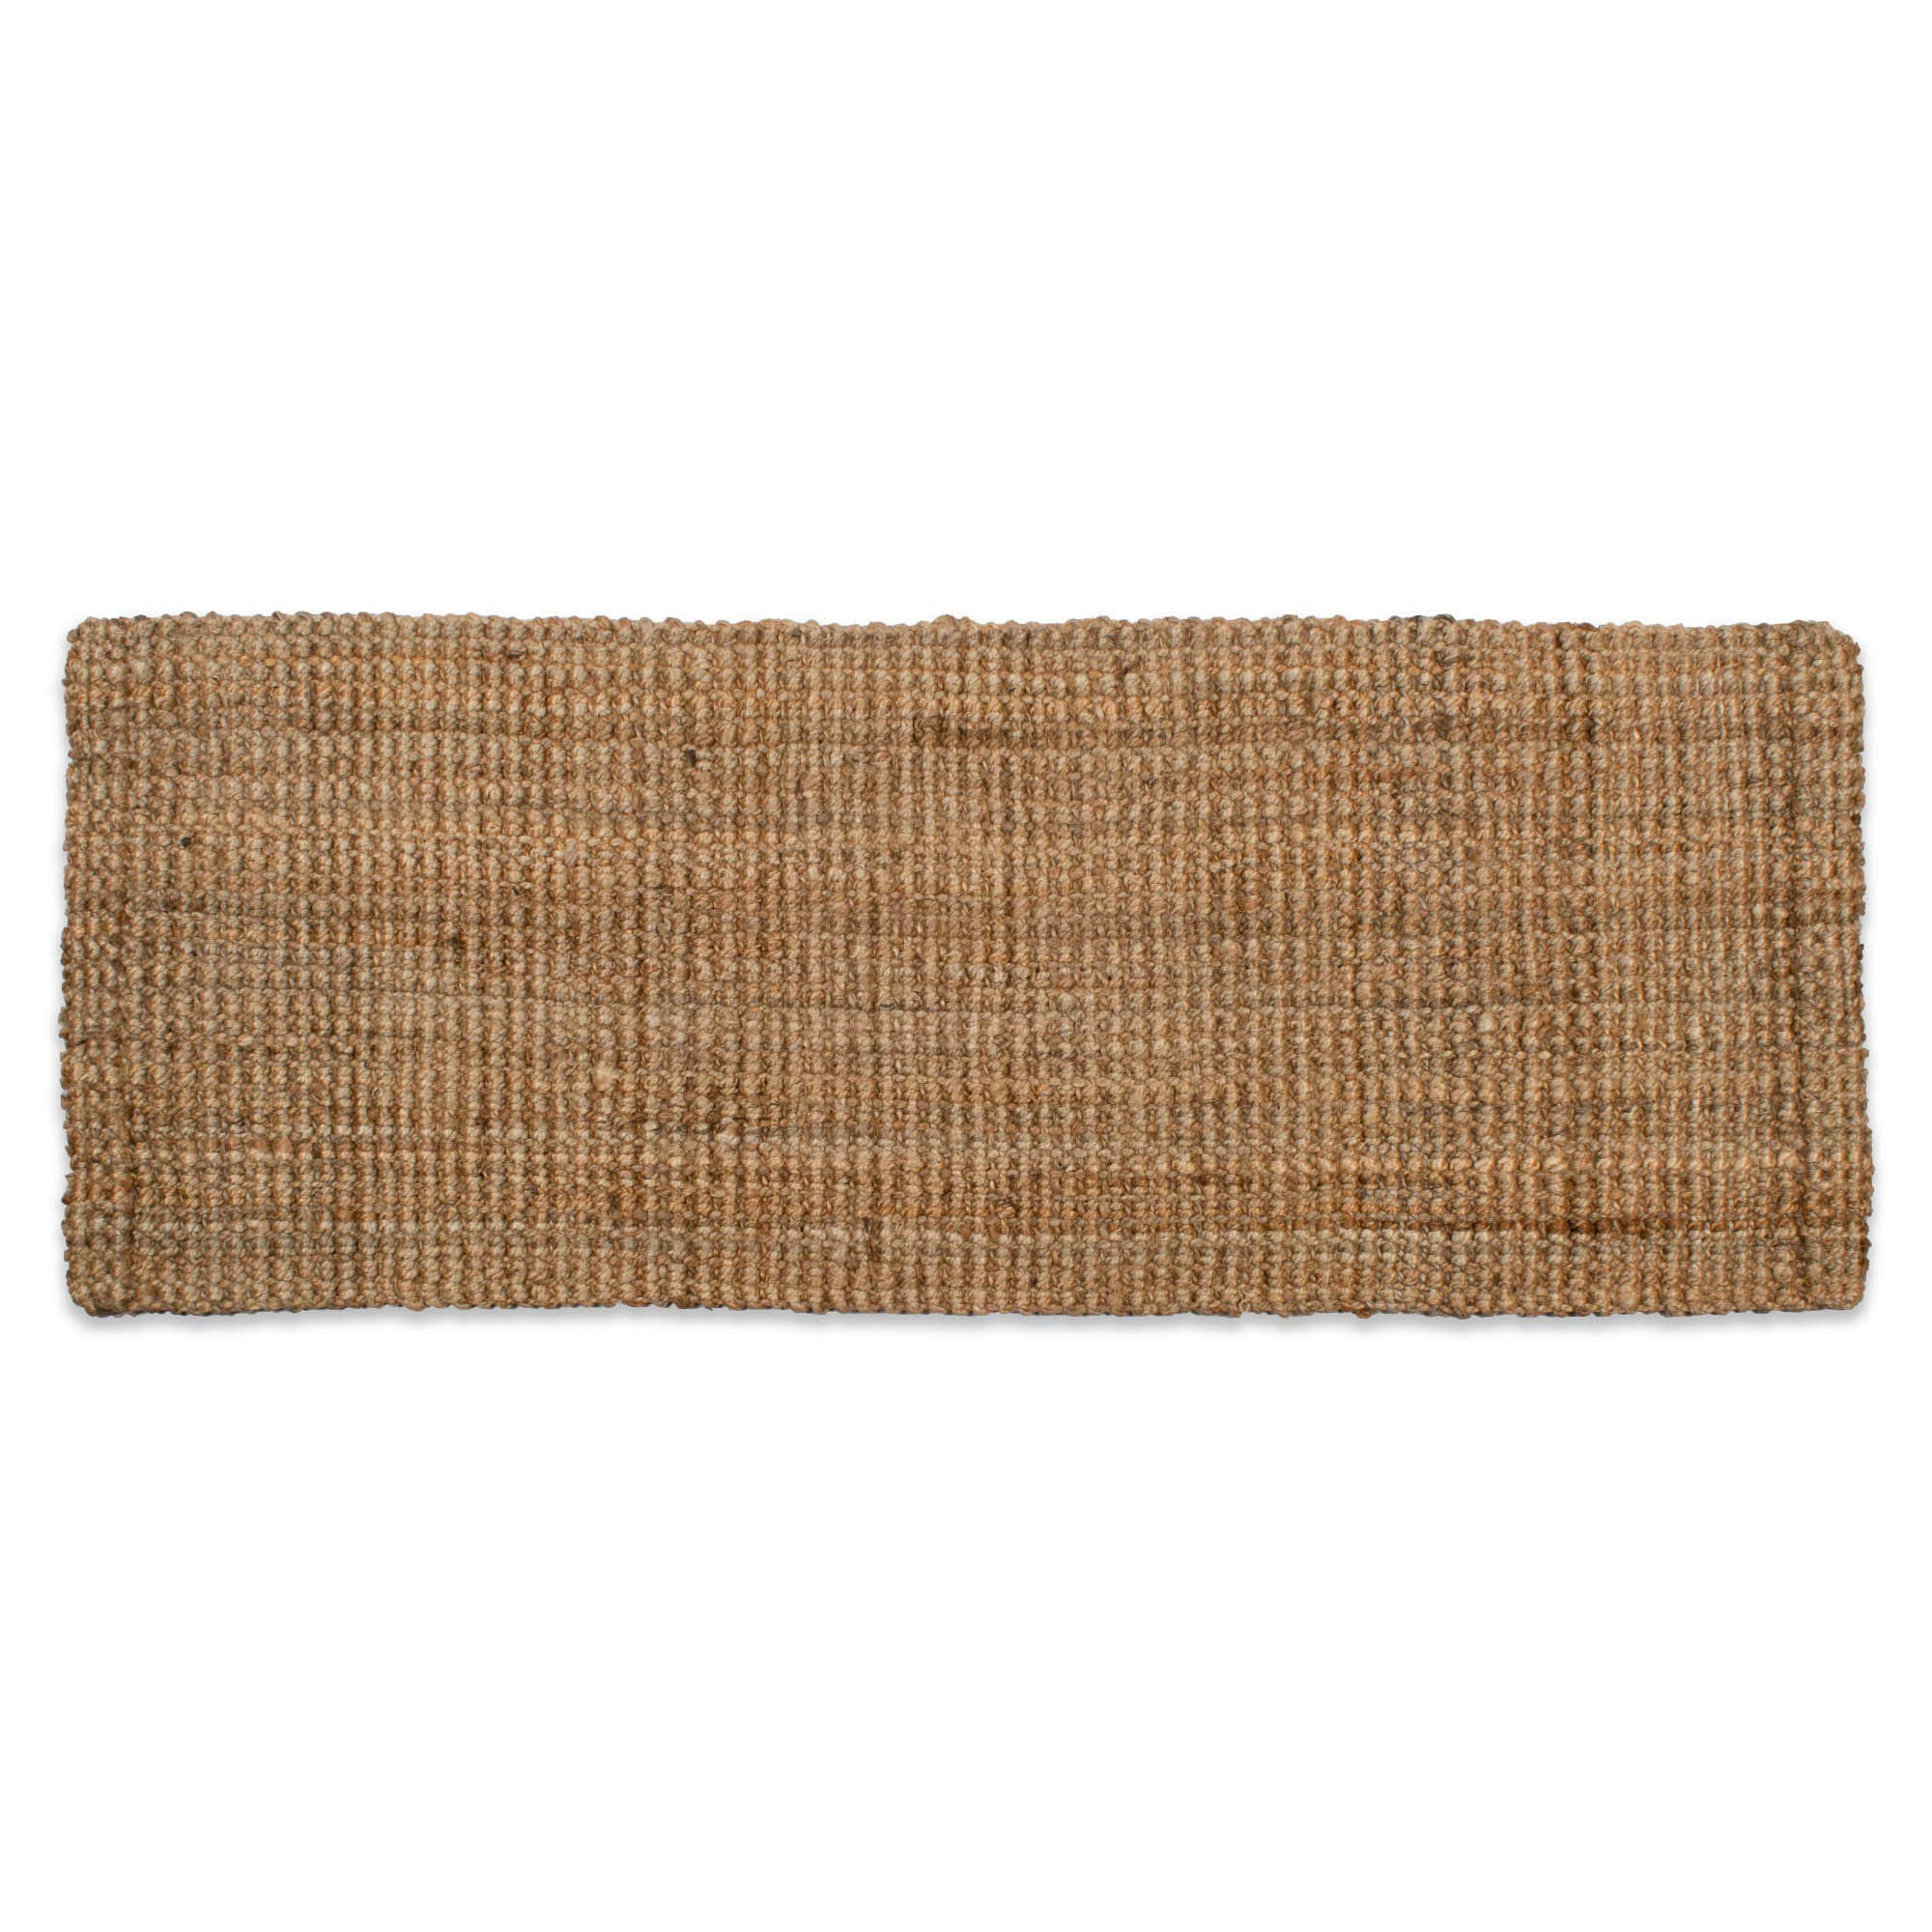 Neutral Eco Friendly Natural Reversible wear Gold